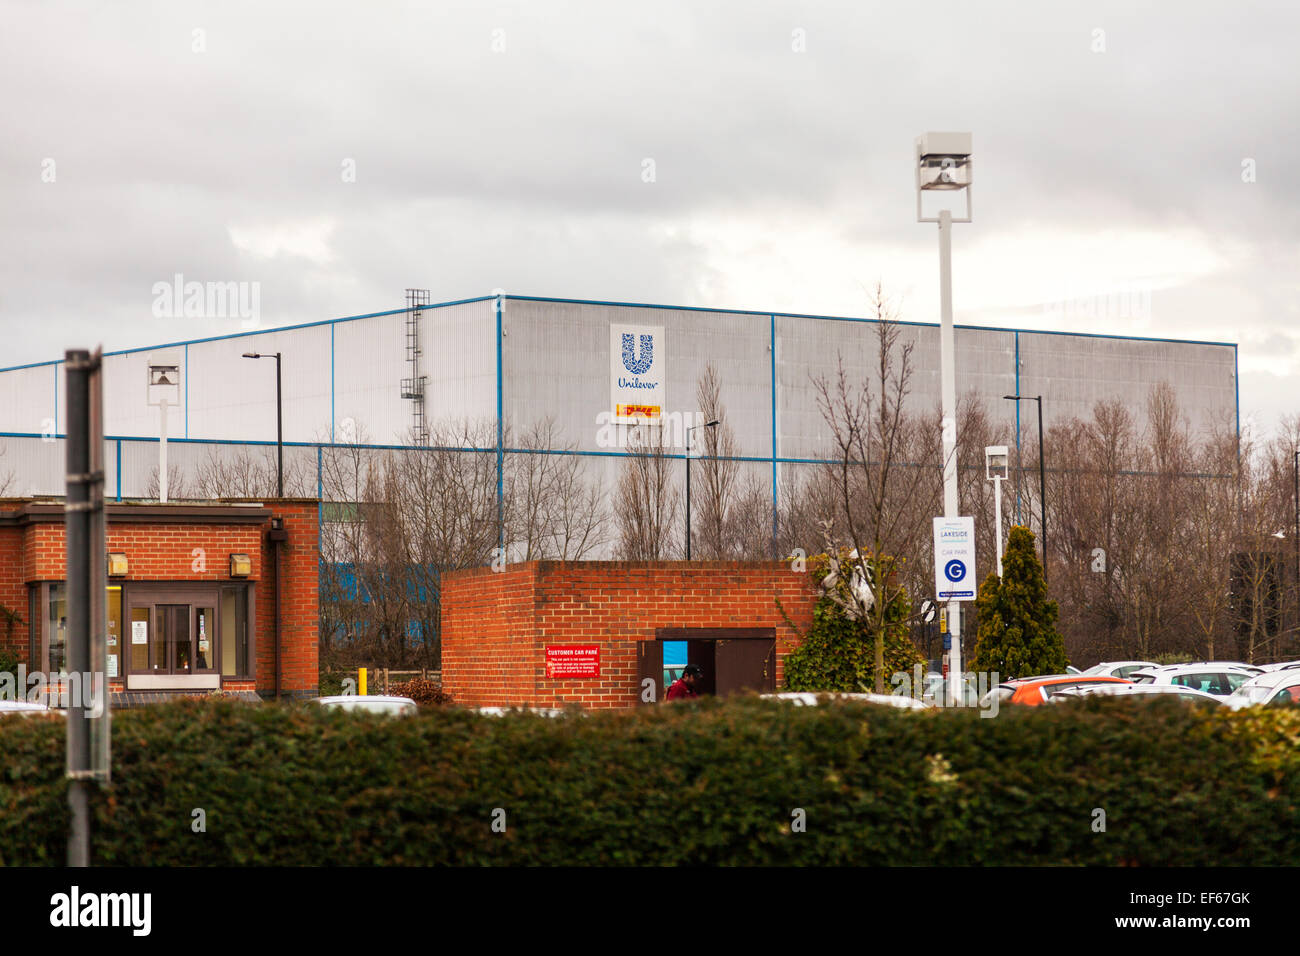 Unilever Doncaster factory building exterior sign Town South Yorkshire UK England - Stock Image